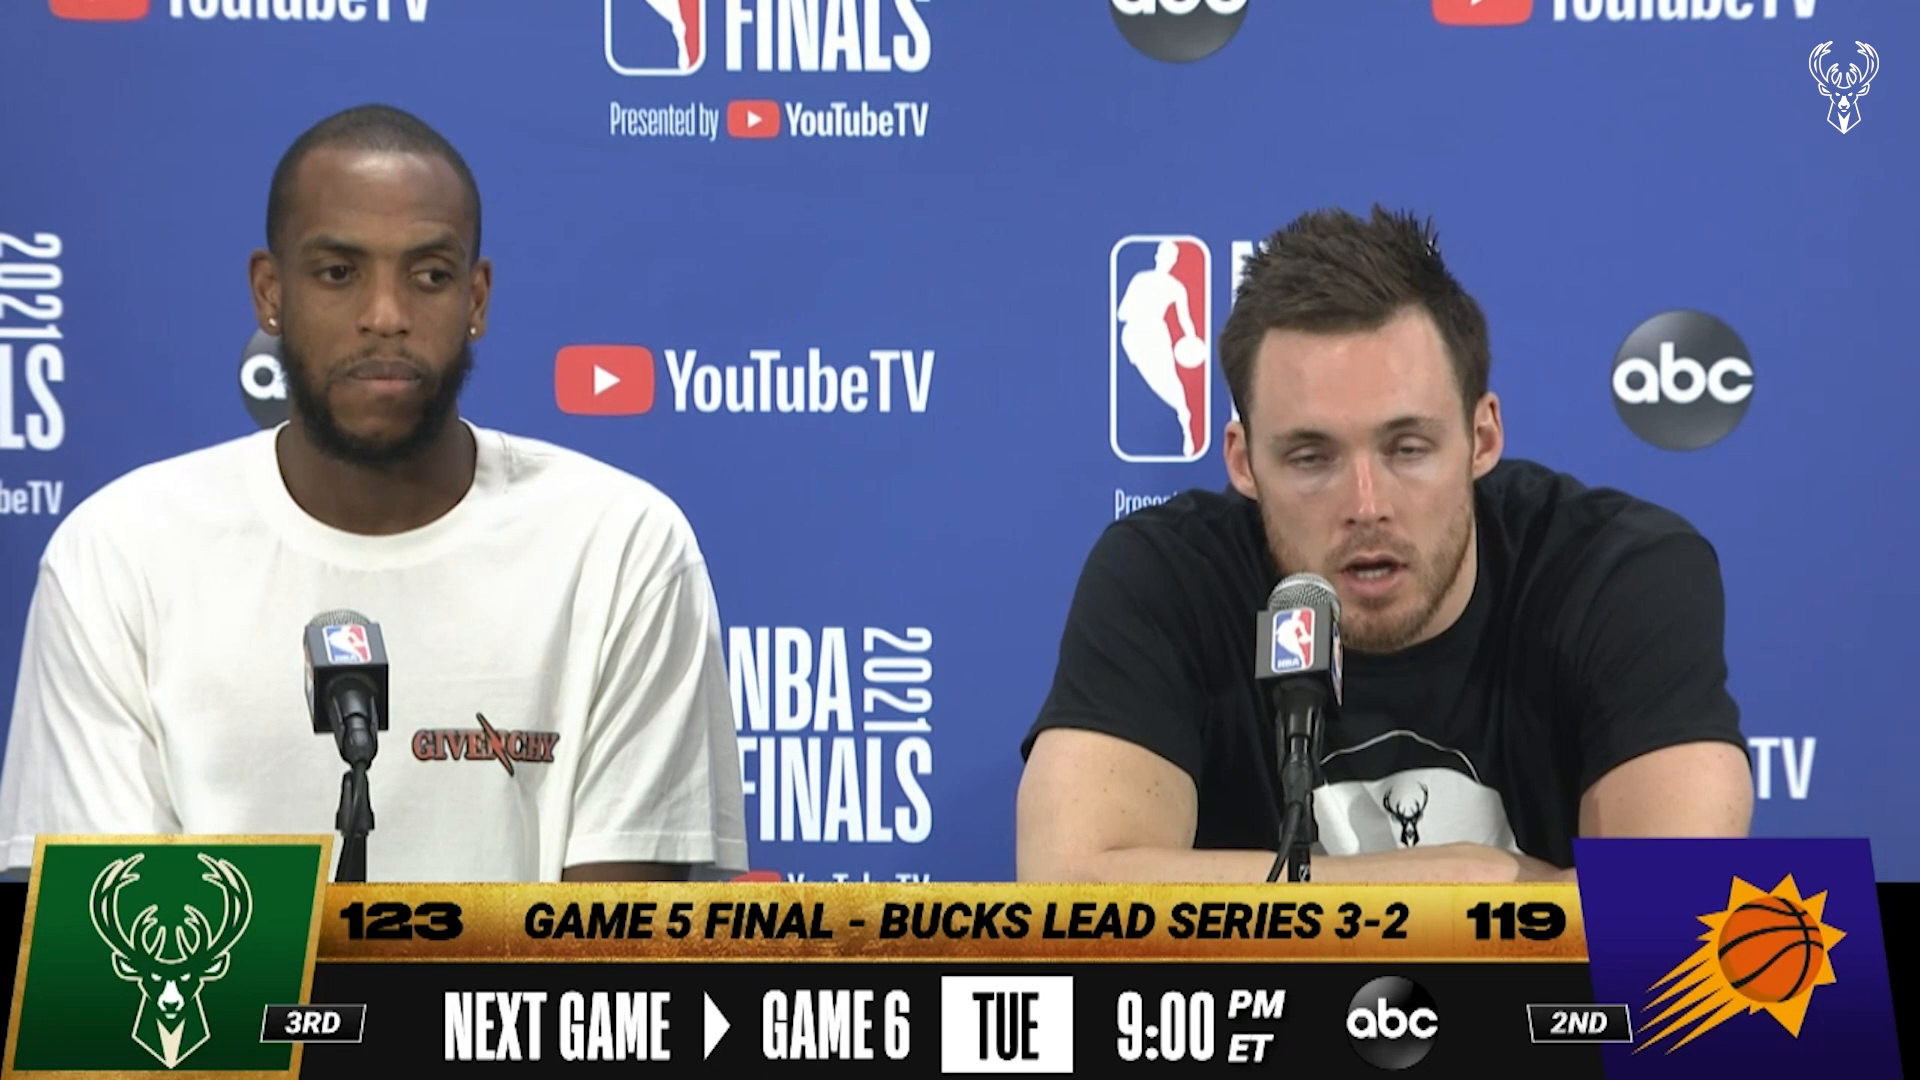 Khris Middleton and Pat Connaughton Game 5 NBA Finals Media Availability | 7.17.21